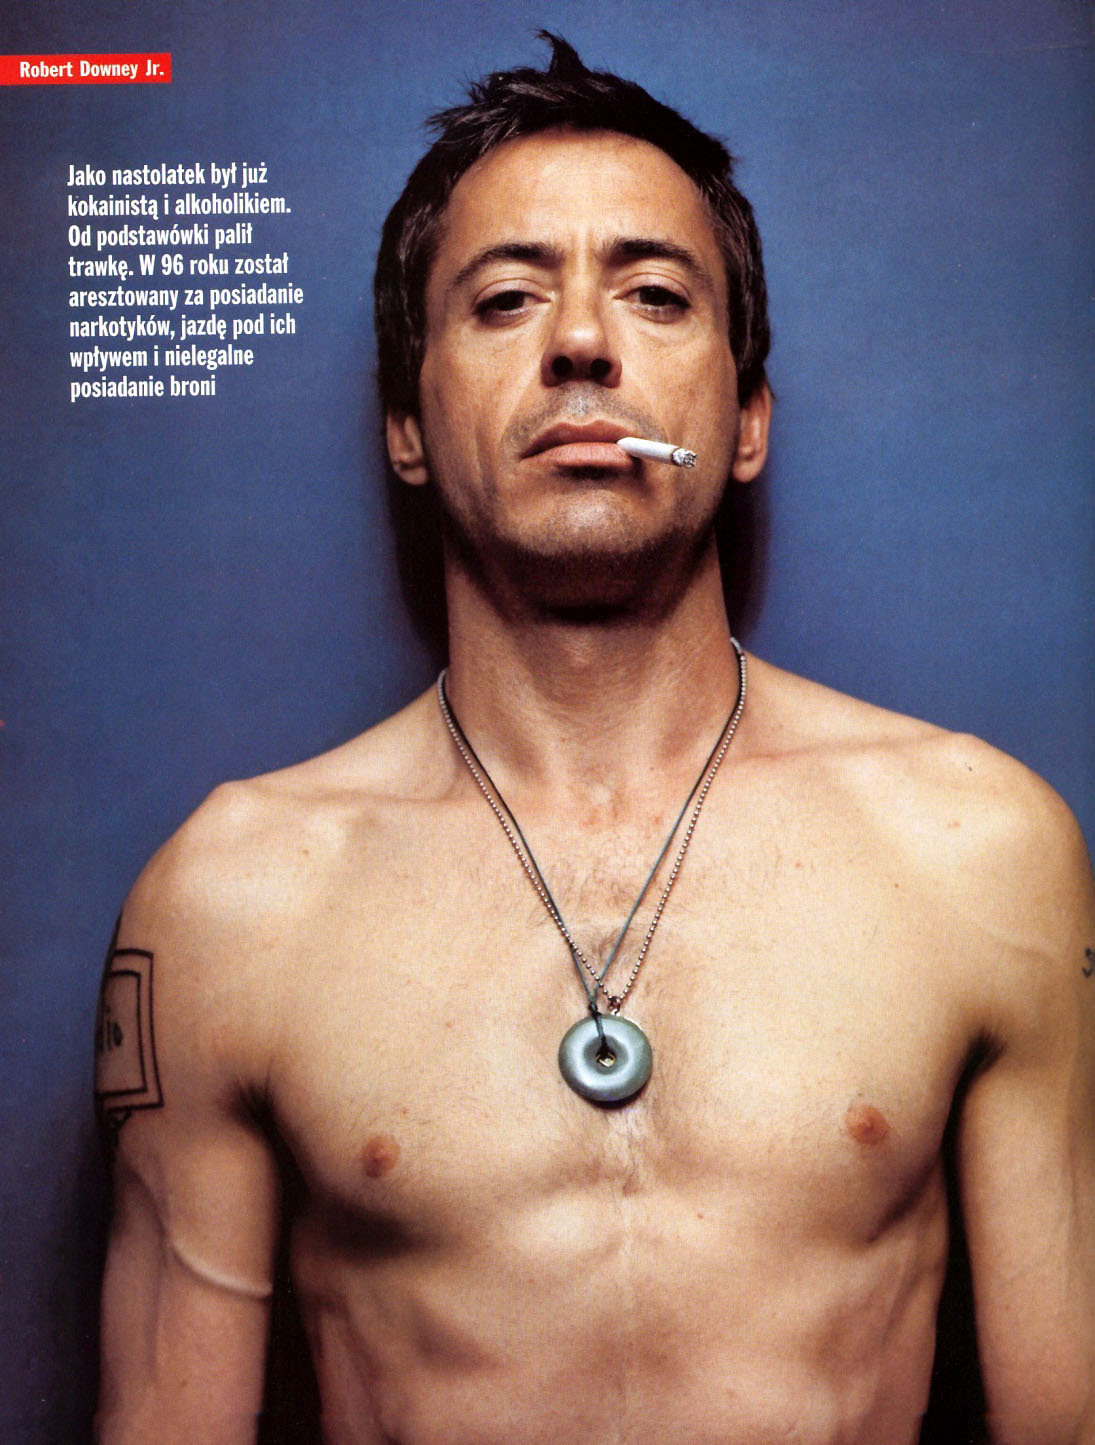 Robert downey jr robert